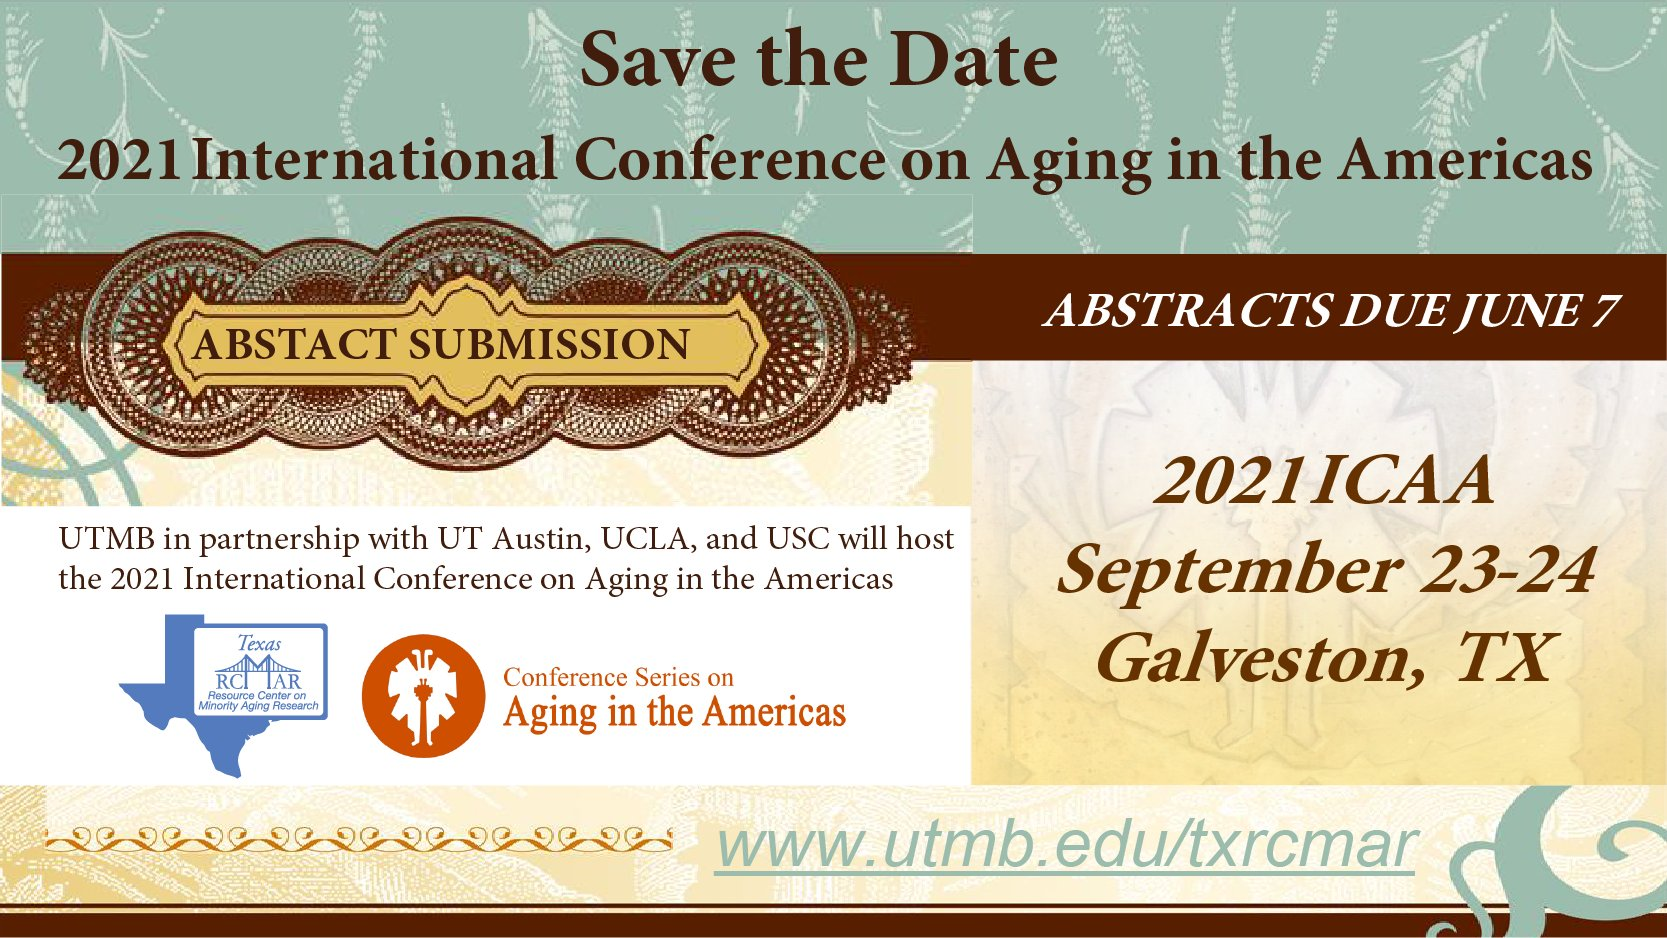 2021 International Conference on Aging in the Americas (Galveston)